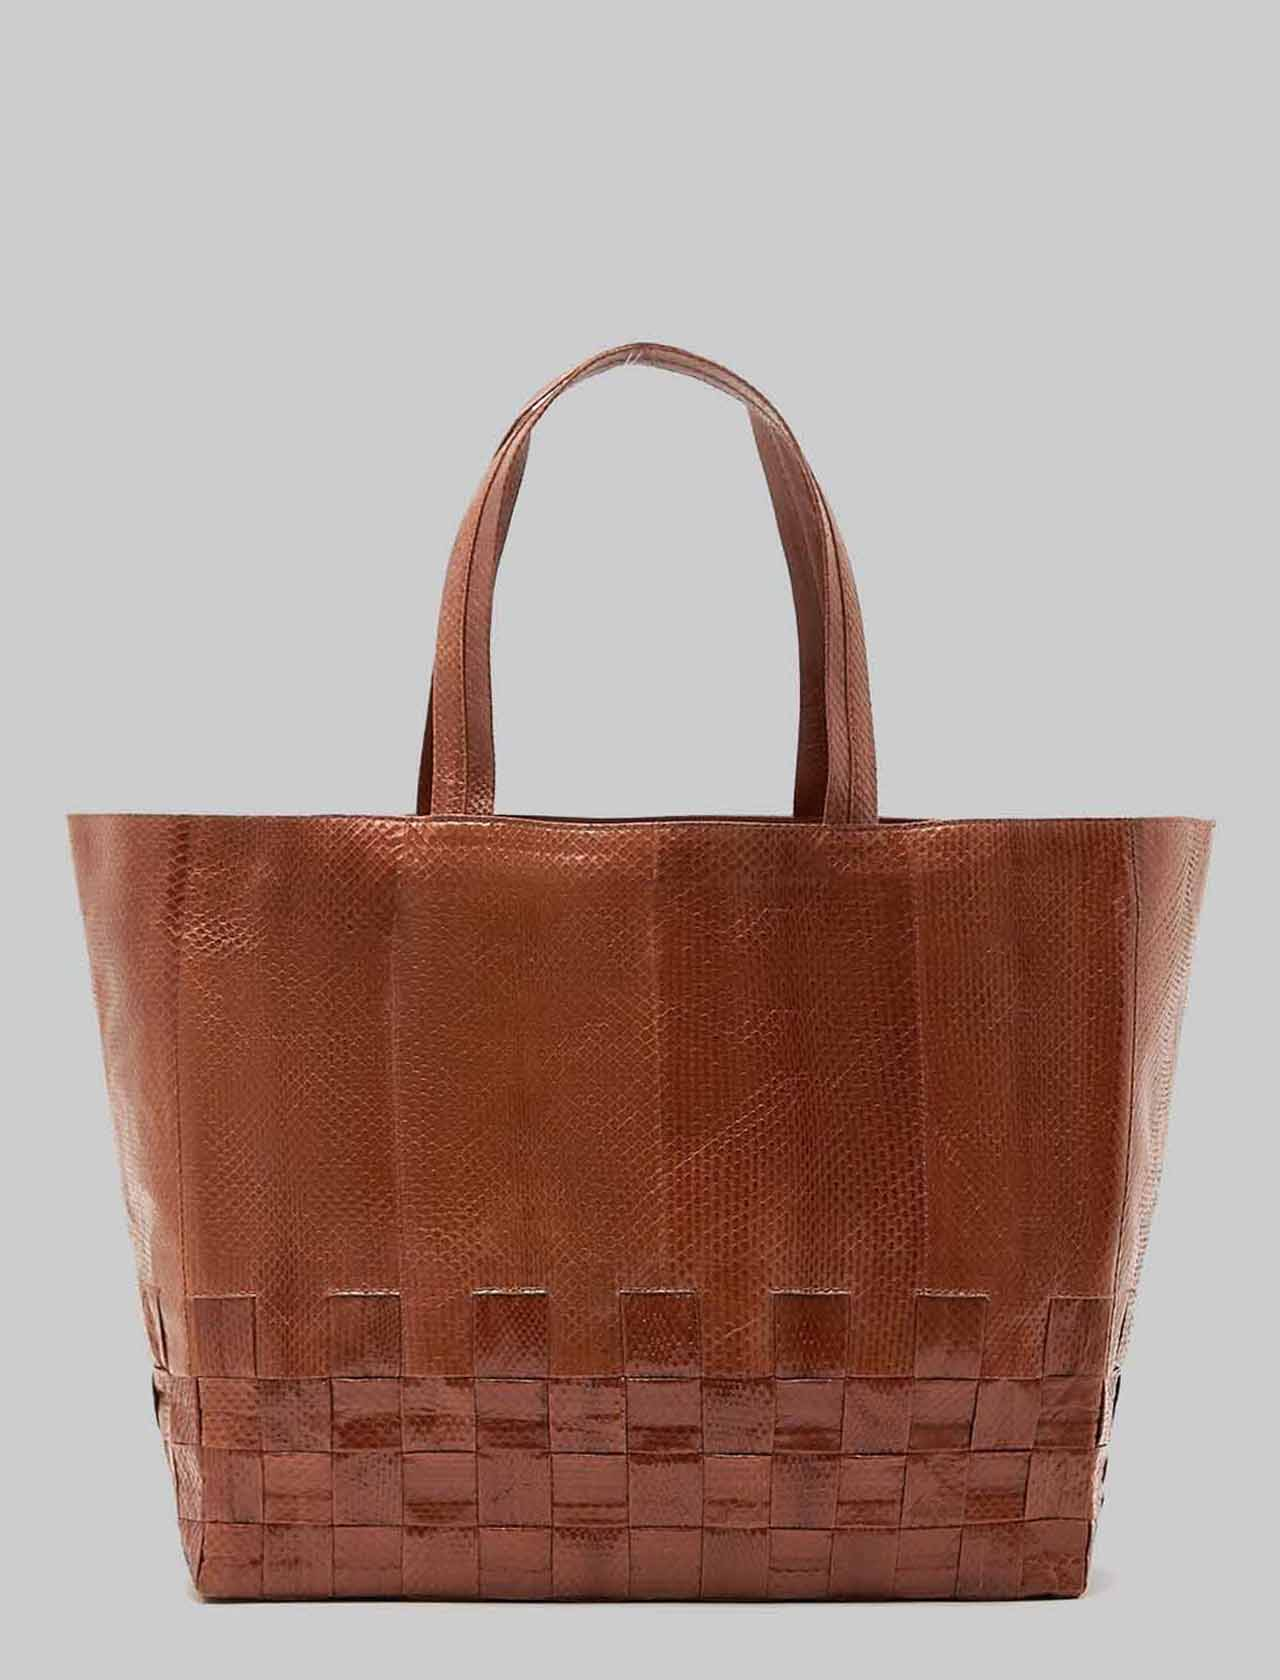 Large Exotic Woven Woman Shopping Bag in Leather Wips with Leather Handles in Tint Maliparmi | Bags and backpacks | BH02620143640008